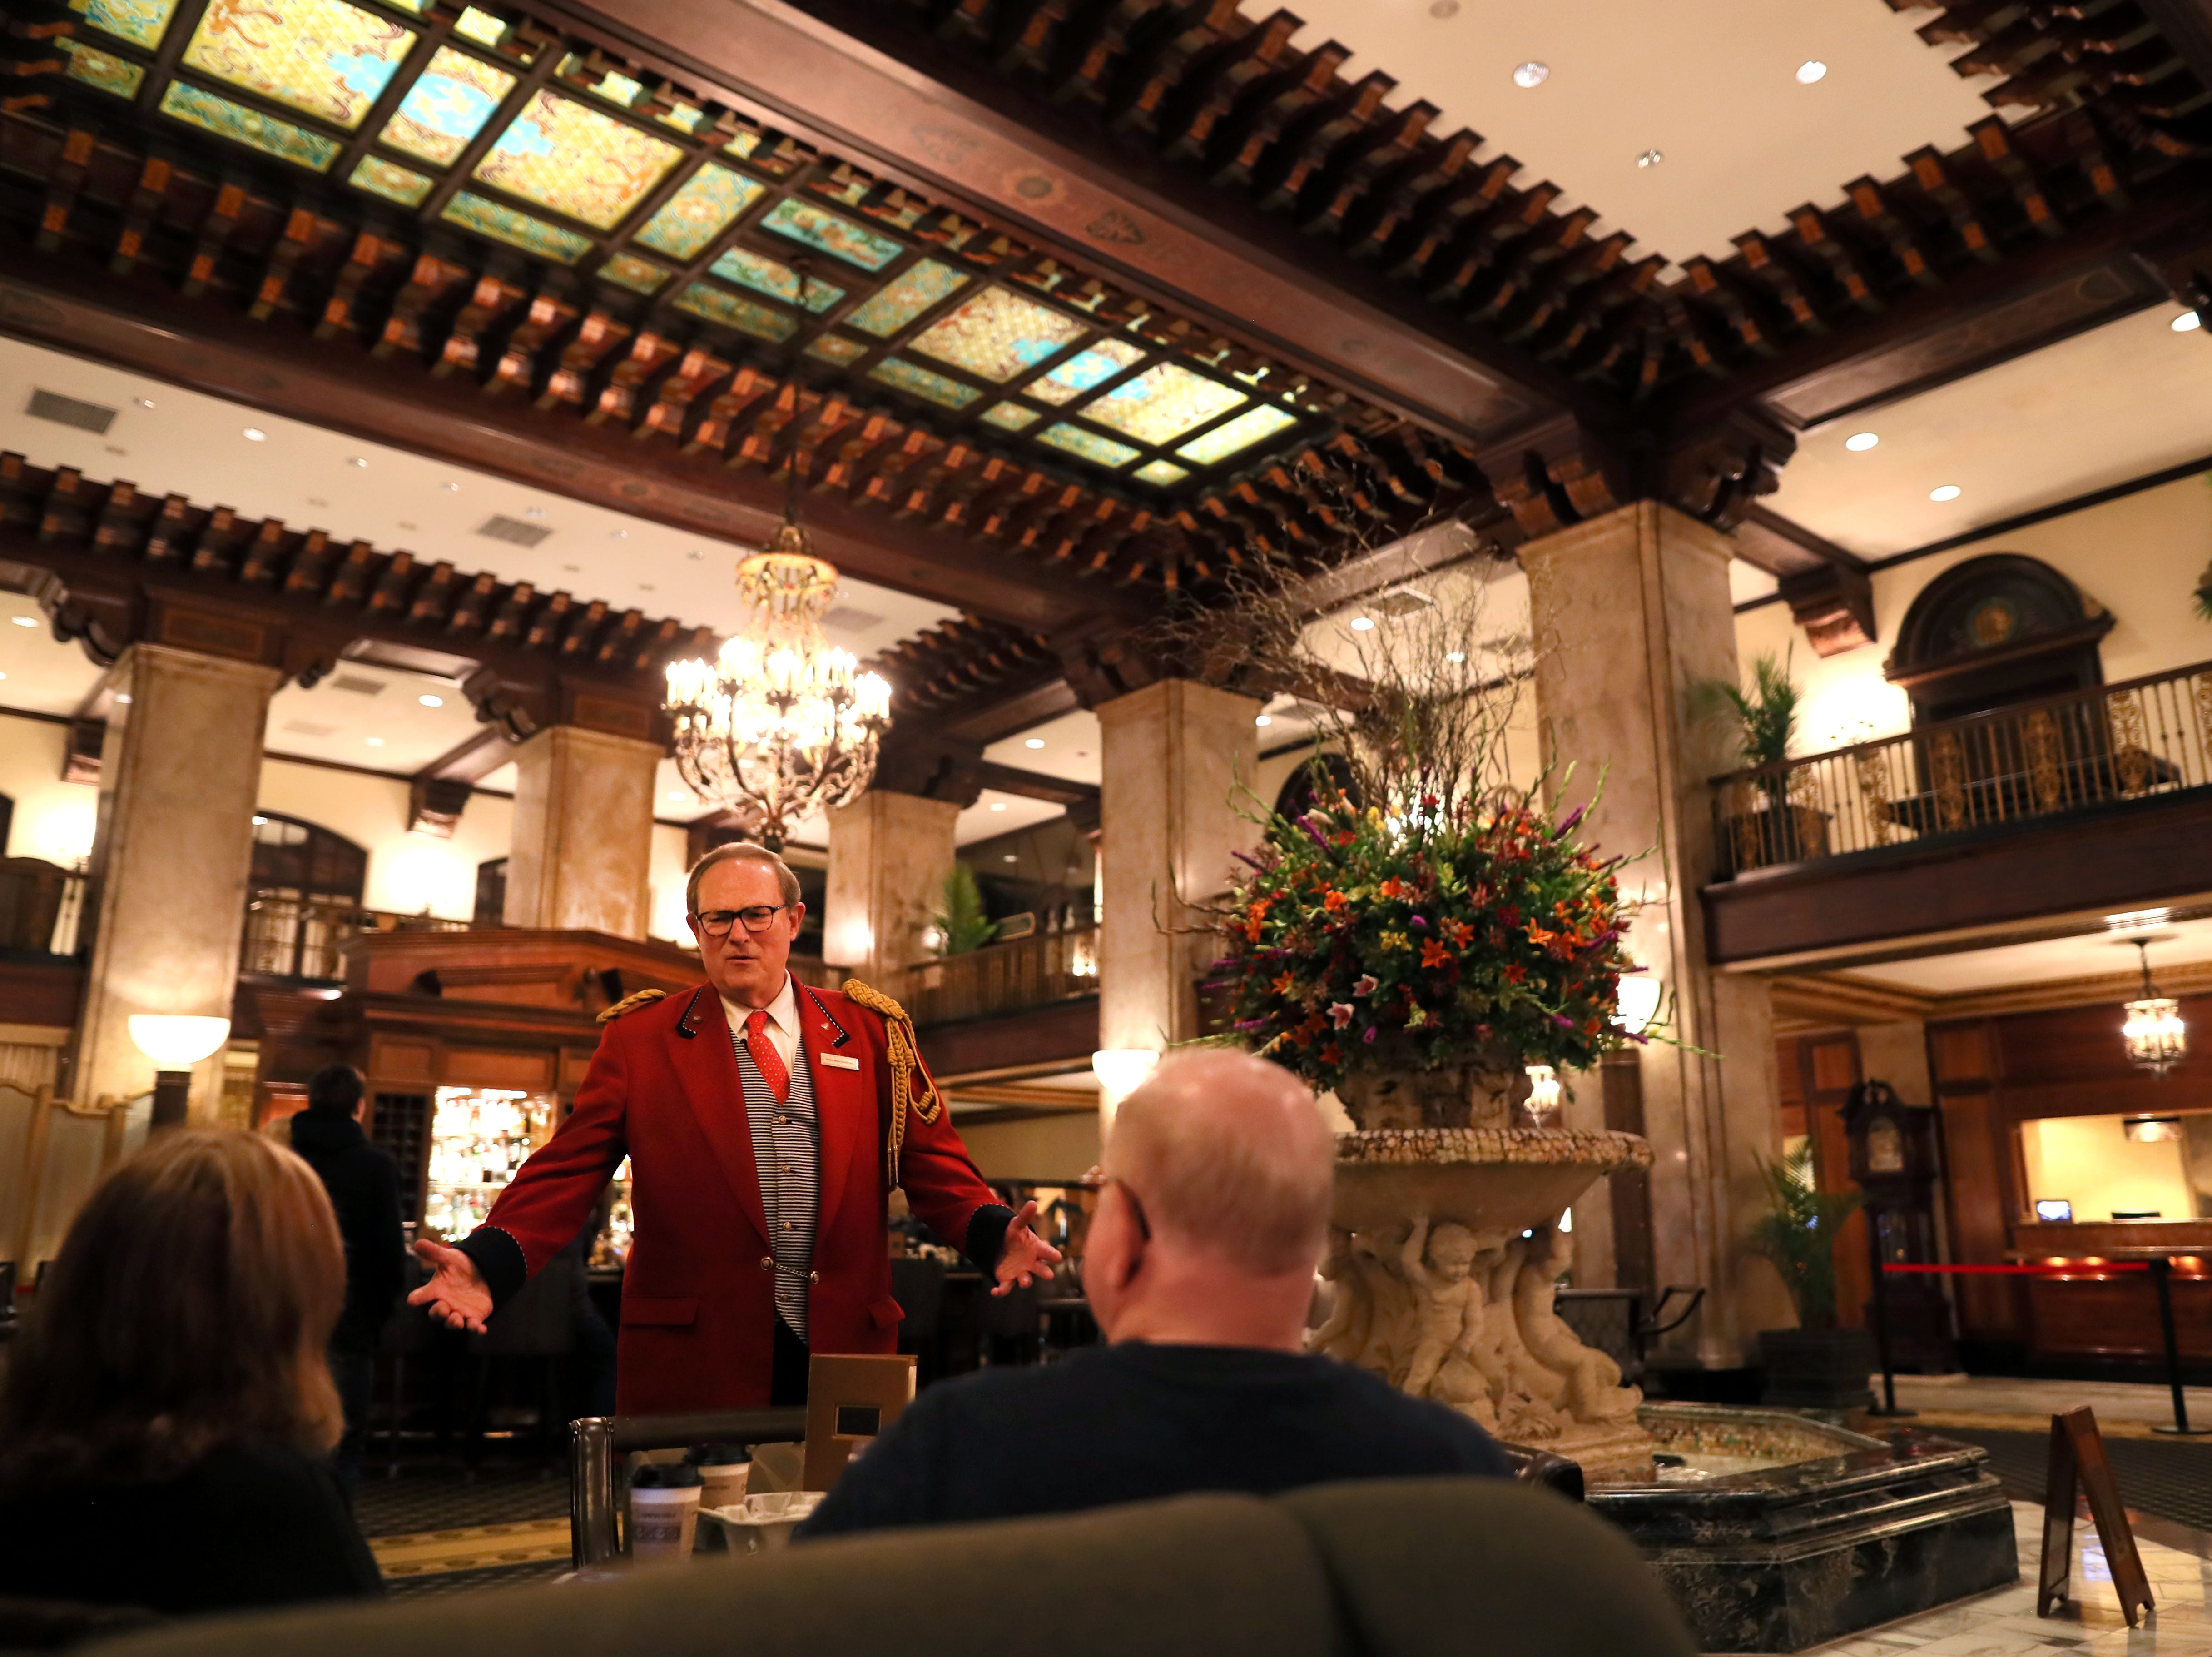 Doug Weatherford, Duckmaster at the Peabody Hotel speaks to guests of the iconic downtown Memphis landmark on Thursday, Feb. 21, 2019.